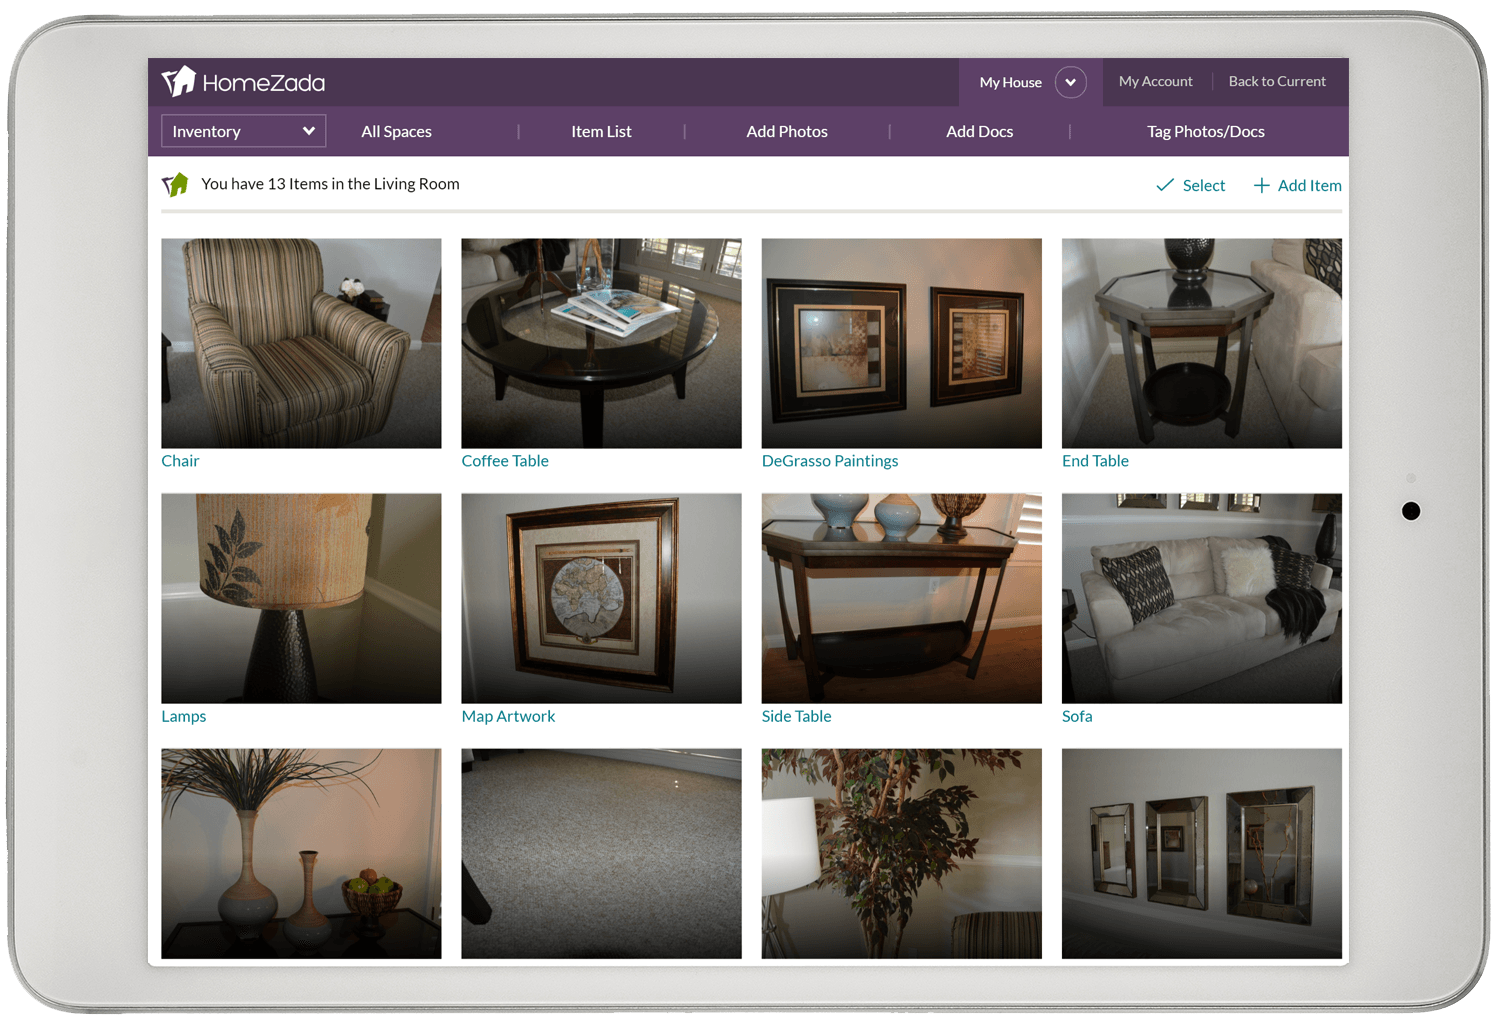 Homezada home inventory gallery of items